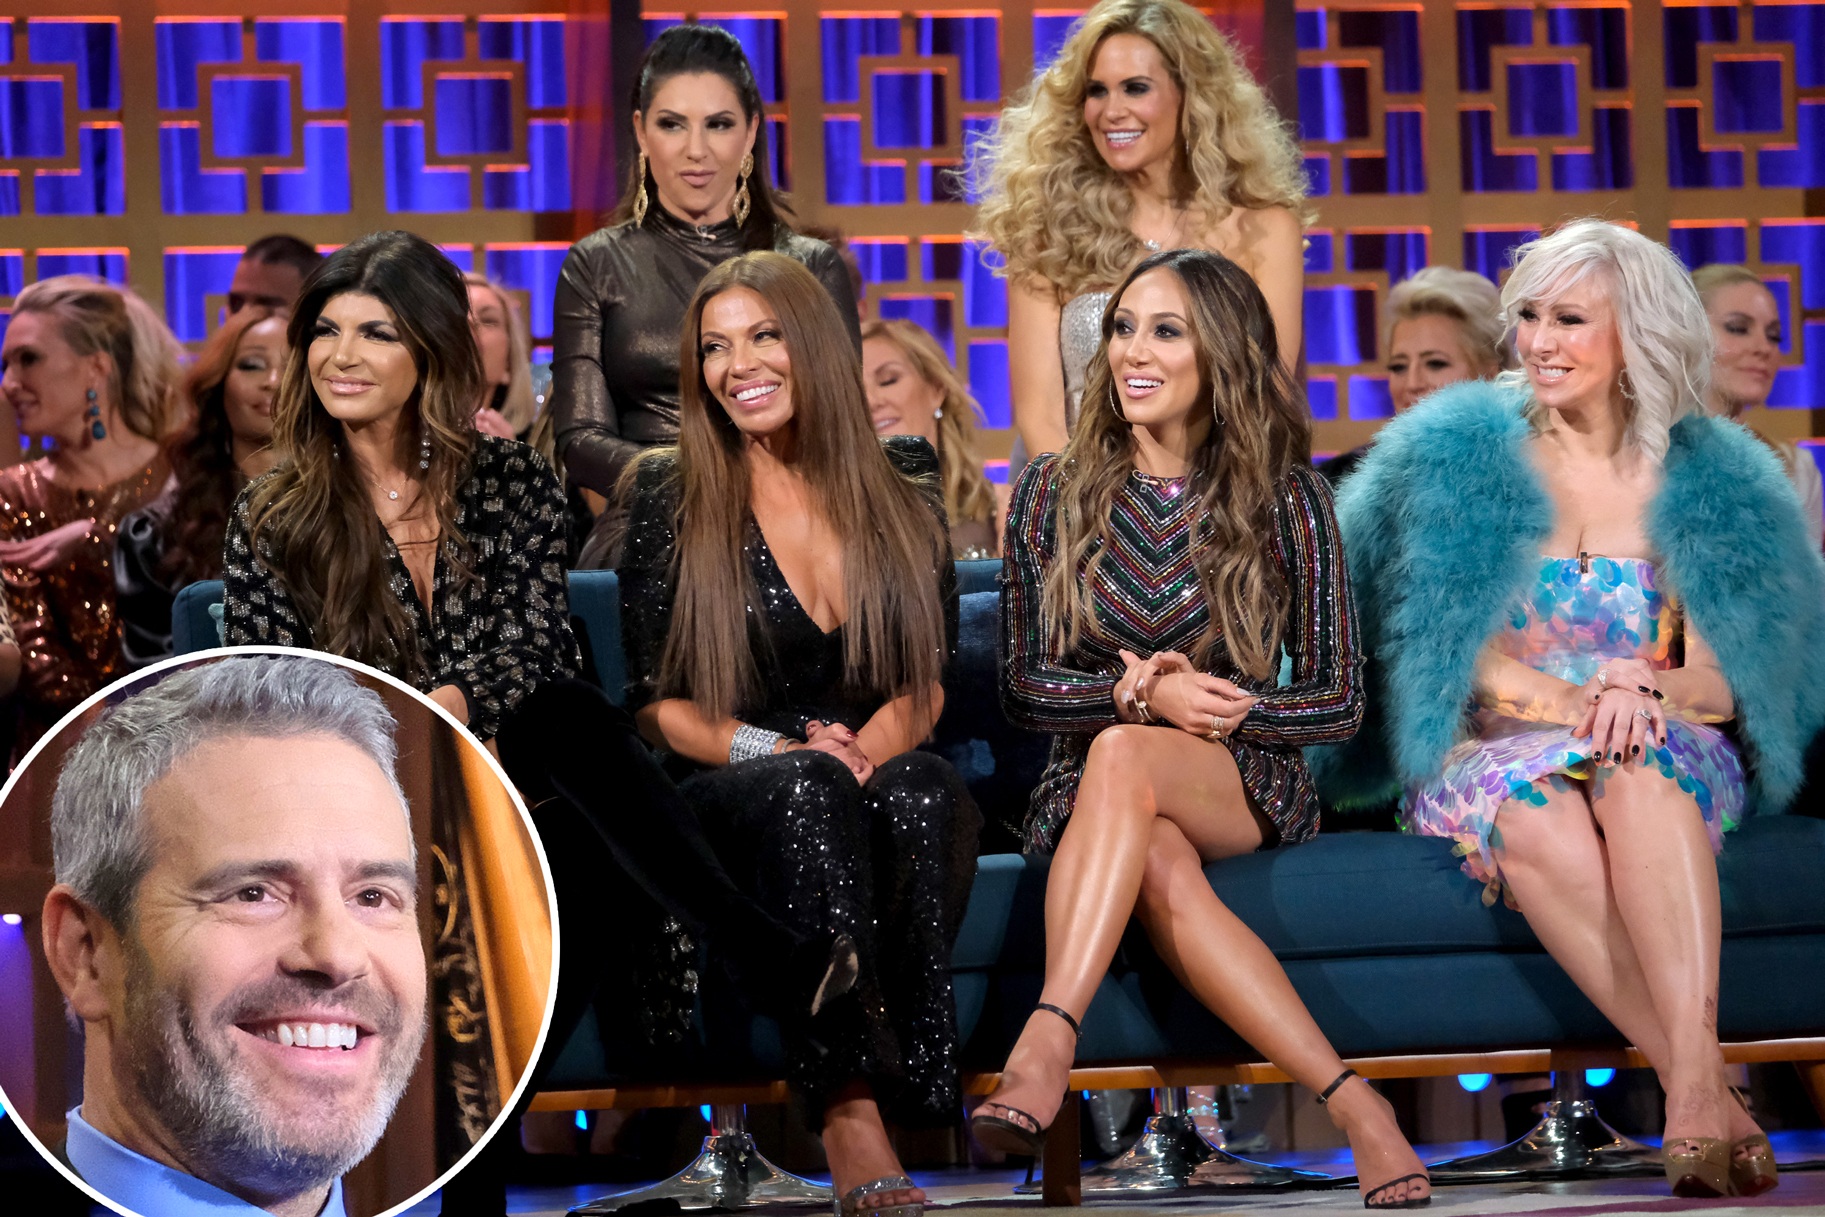 We Wonder What Andy Cohen Was Thinking at the RHONJ Season 10 Reunion...